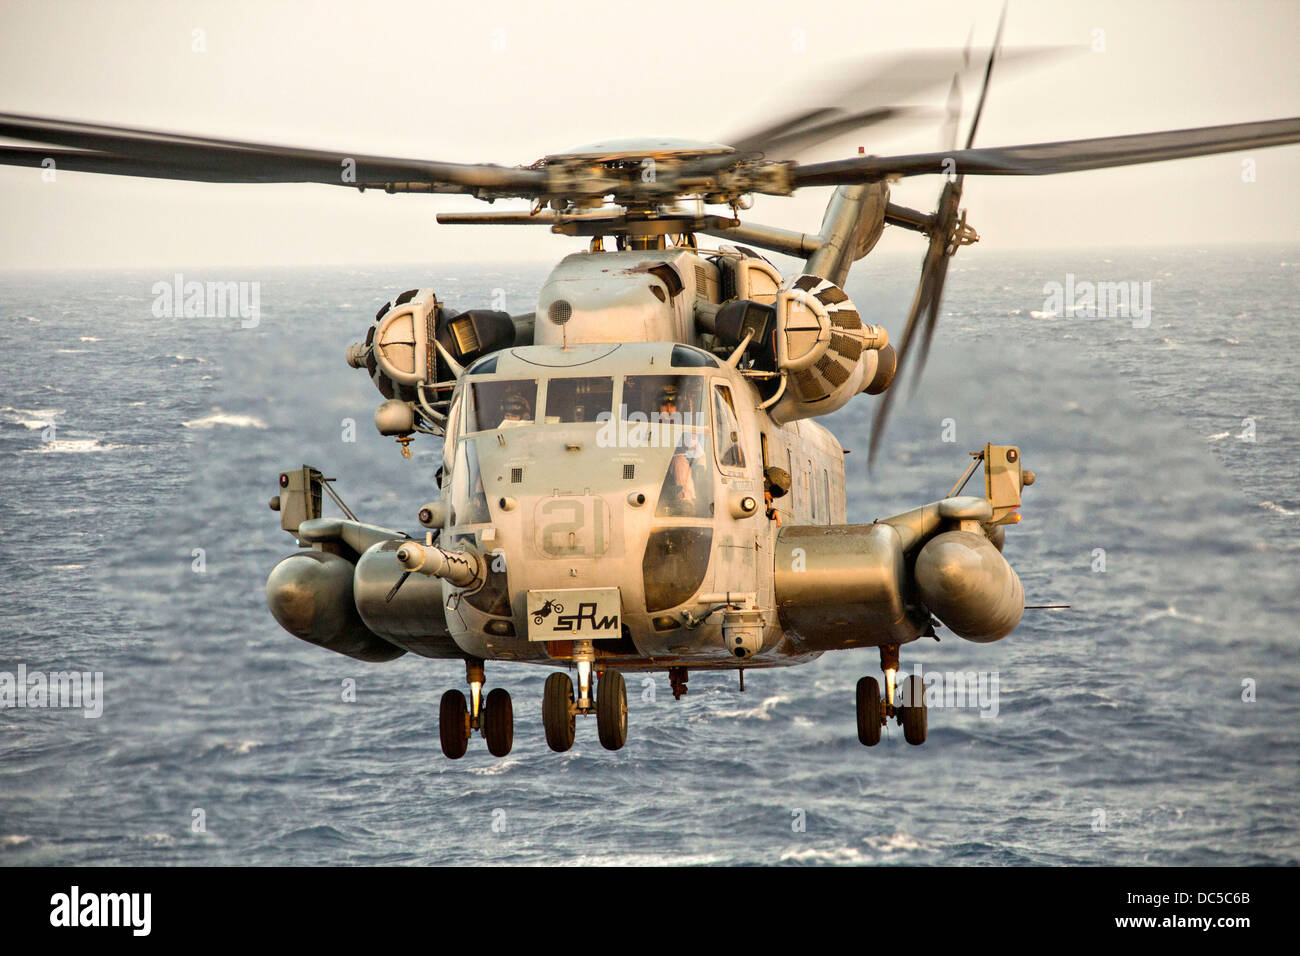 A US Marine Corps CH-53E Super Stallion helicopter prepares to land on the flight deck of the USS San Antonio July - Stock Image